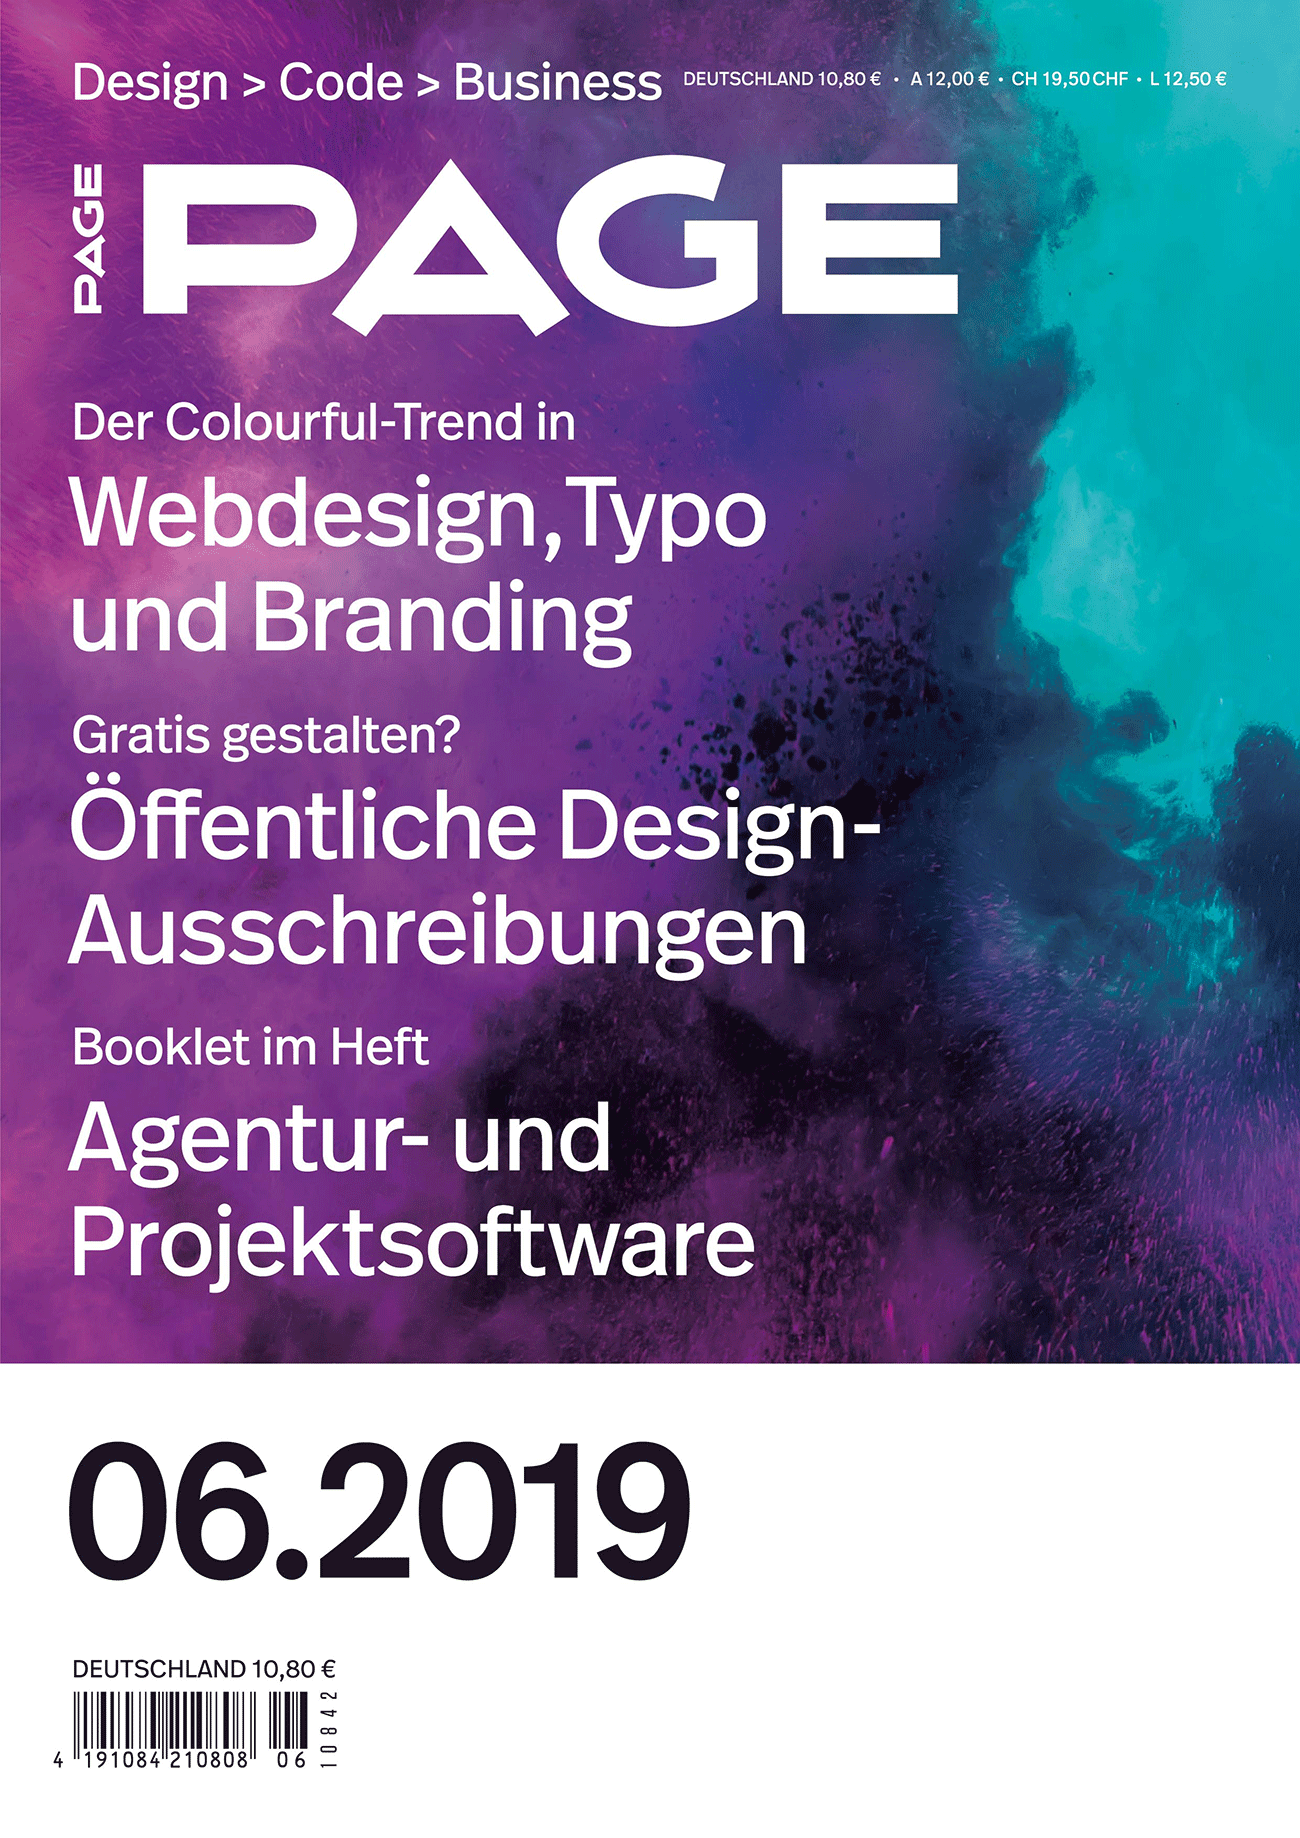 Cover PAGE 06.2019, Branding, Corporate Design, Fonts, Interface Design, Onlineshop Design, Service Design, Typografie, UX Design, UI Design, Webfonts